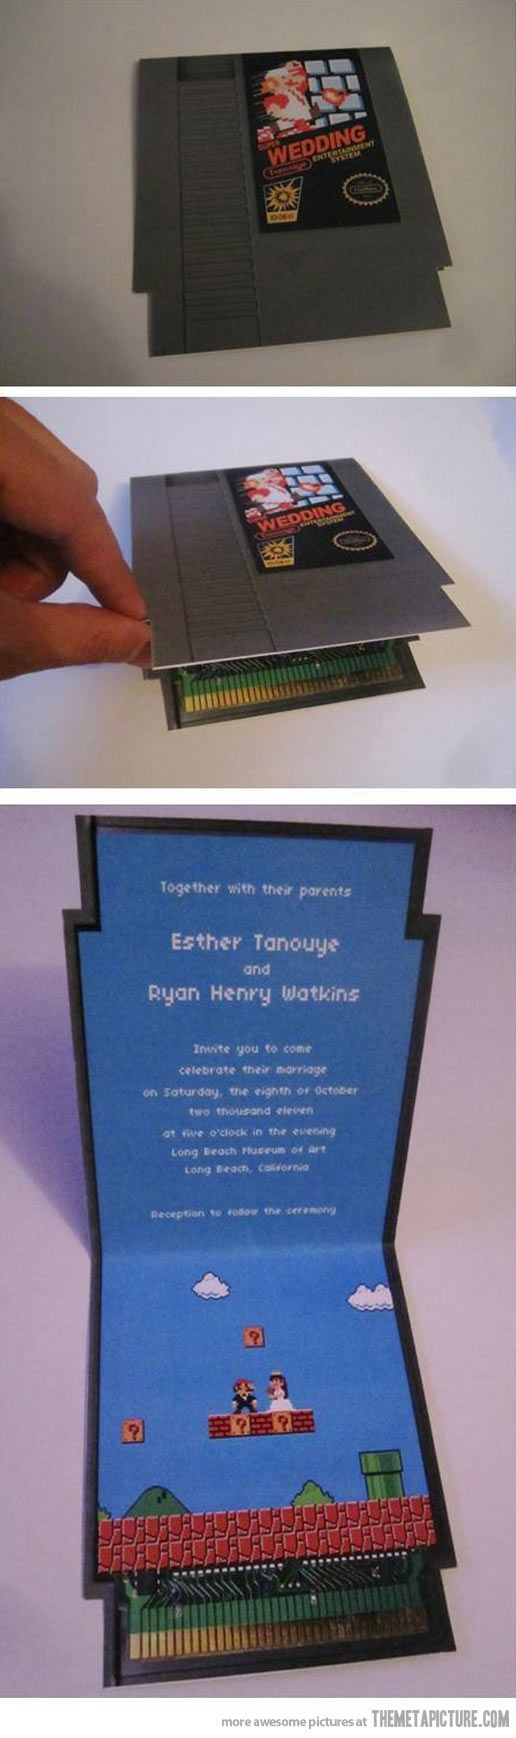 Gamer Wedding Card…  I probably wouldn't do it but I know some people who might. Love the idea though.